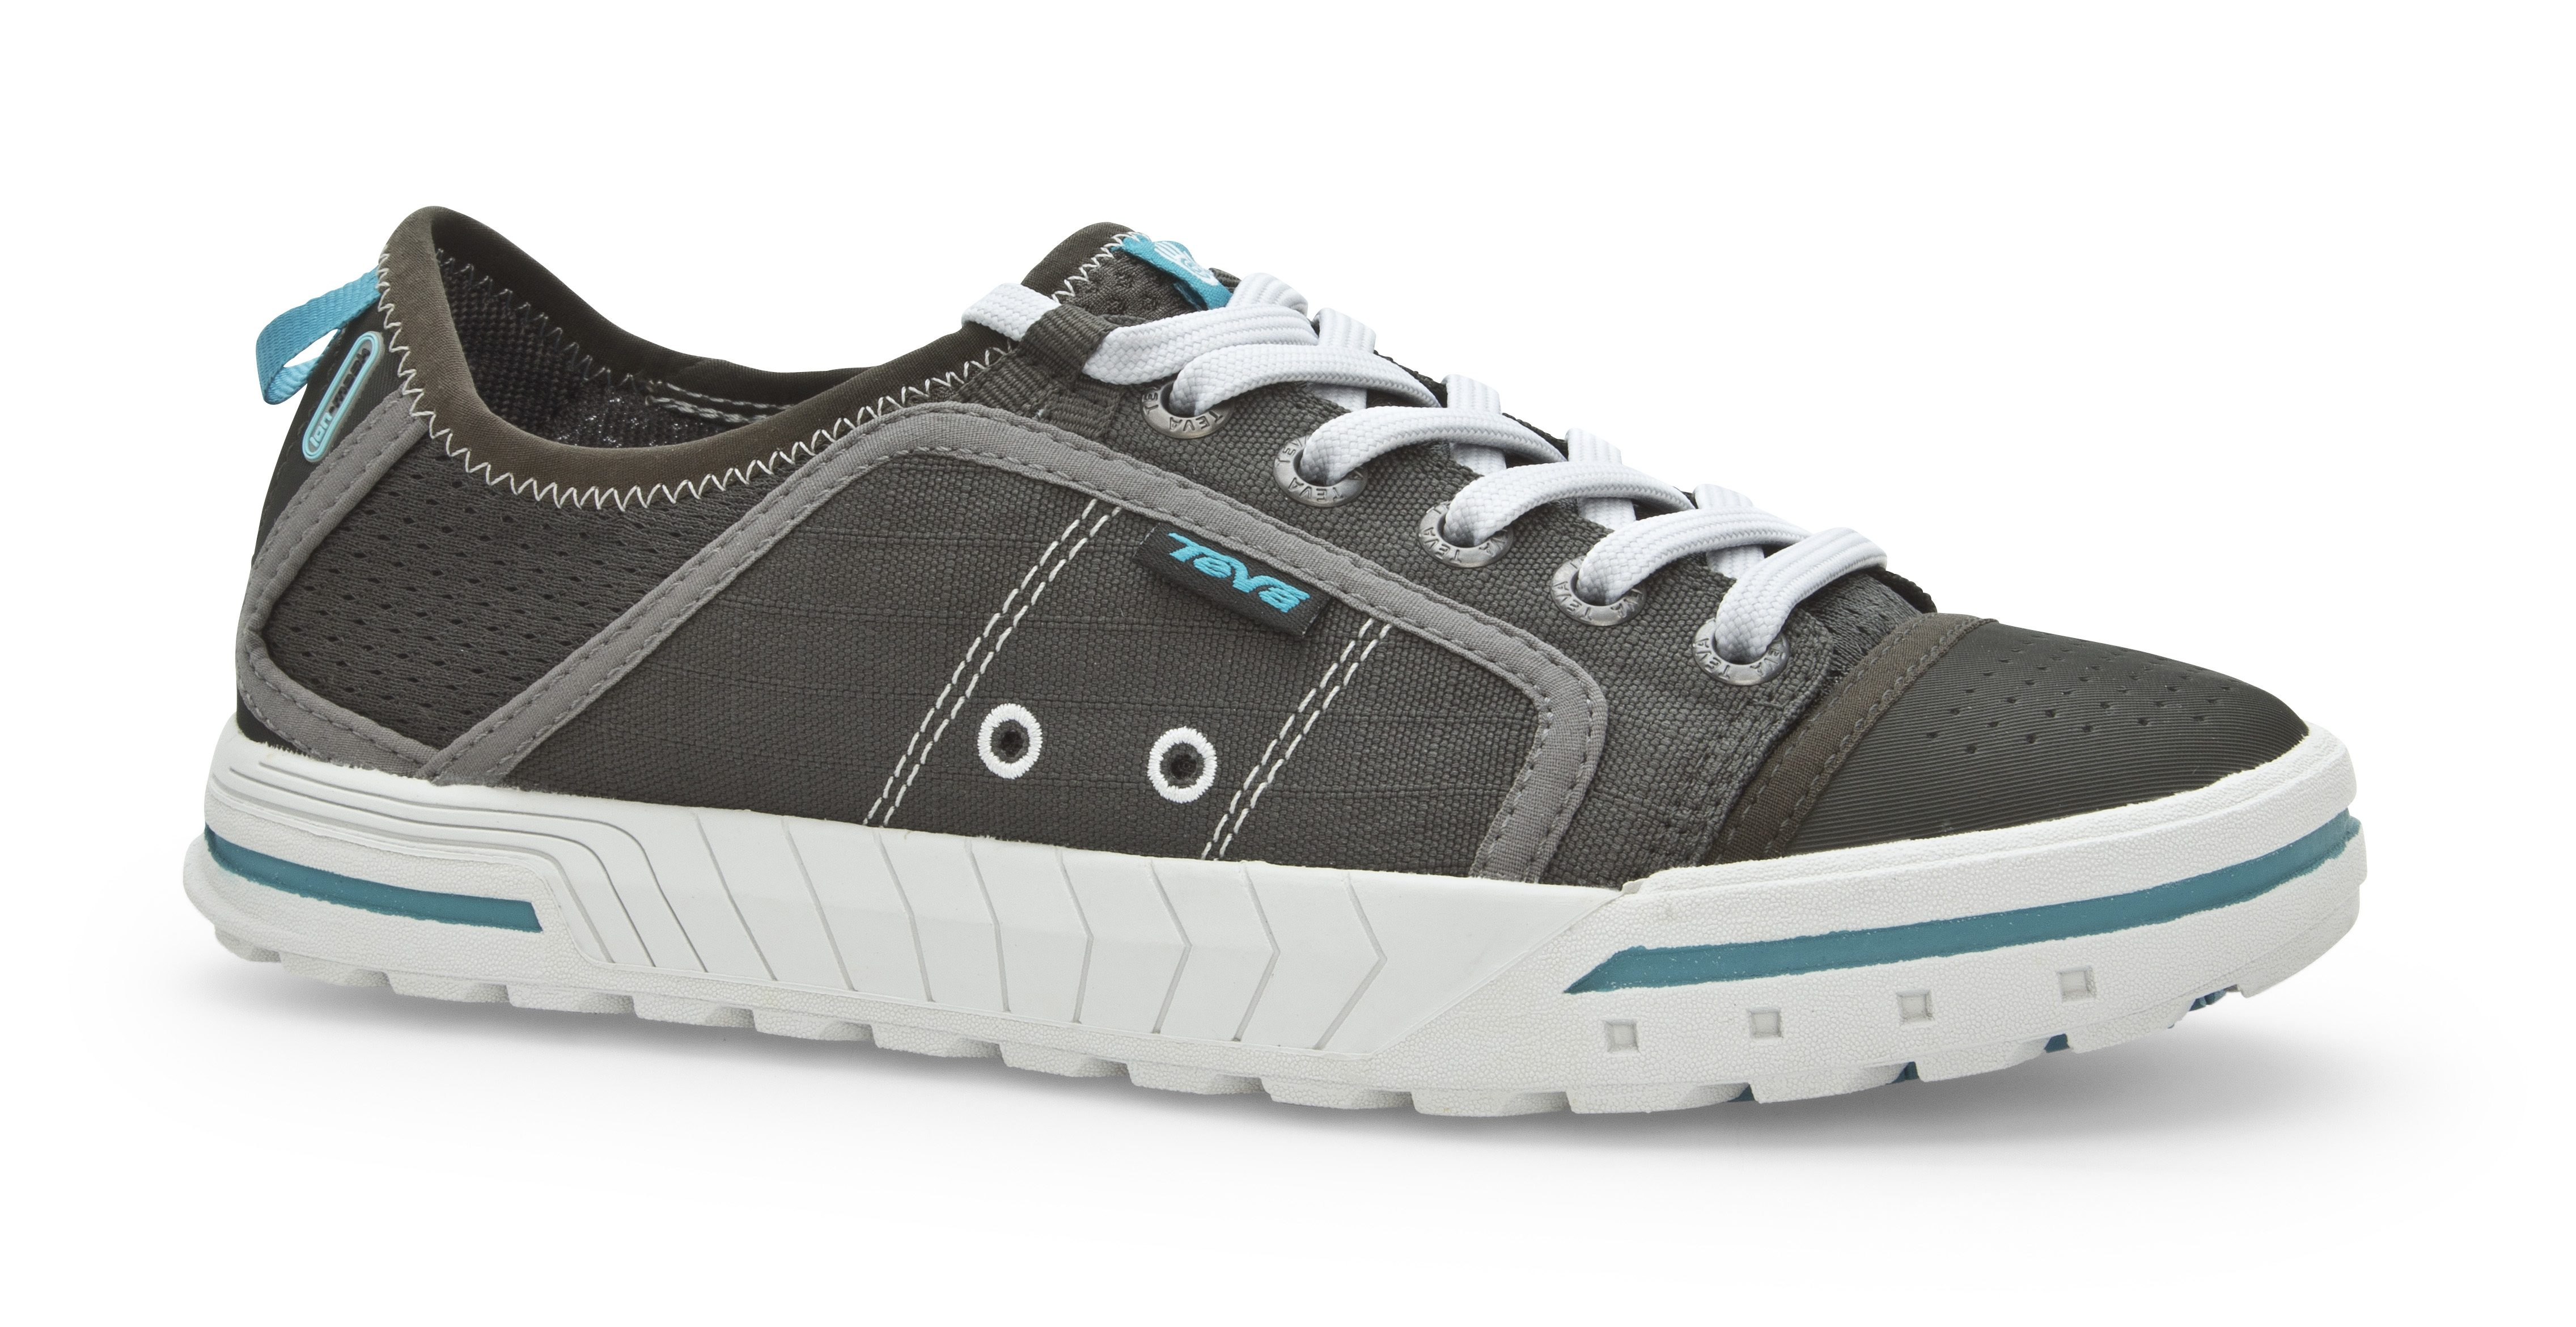 The Fuse-ion from Teva's Blue Line Collection, will debut in Spring 2012.